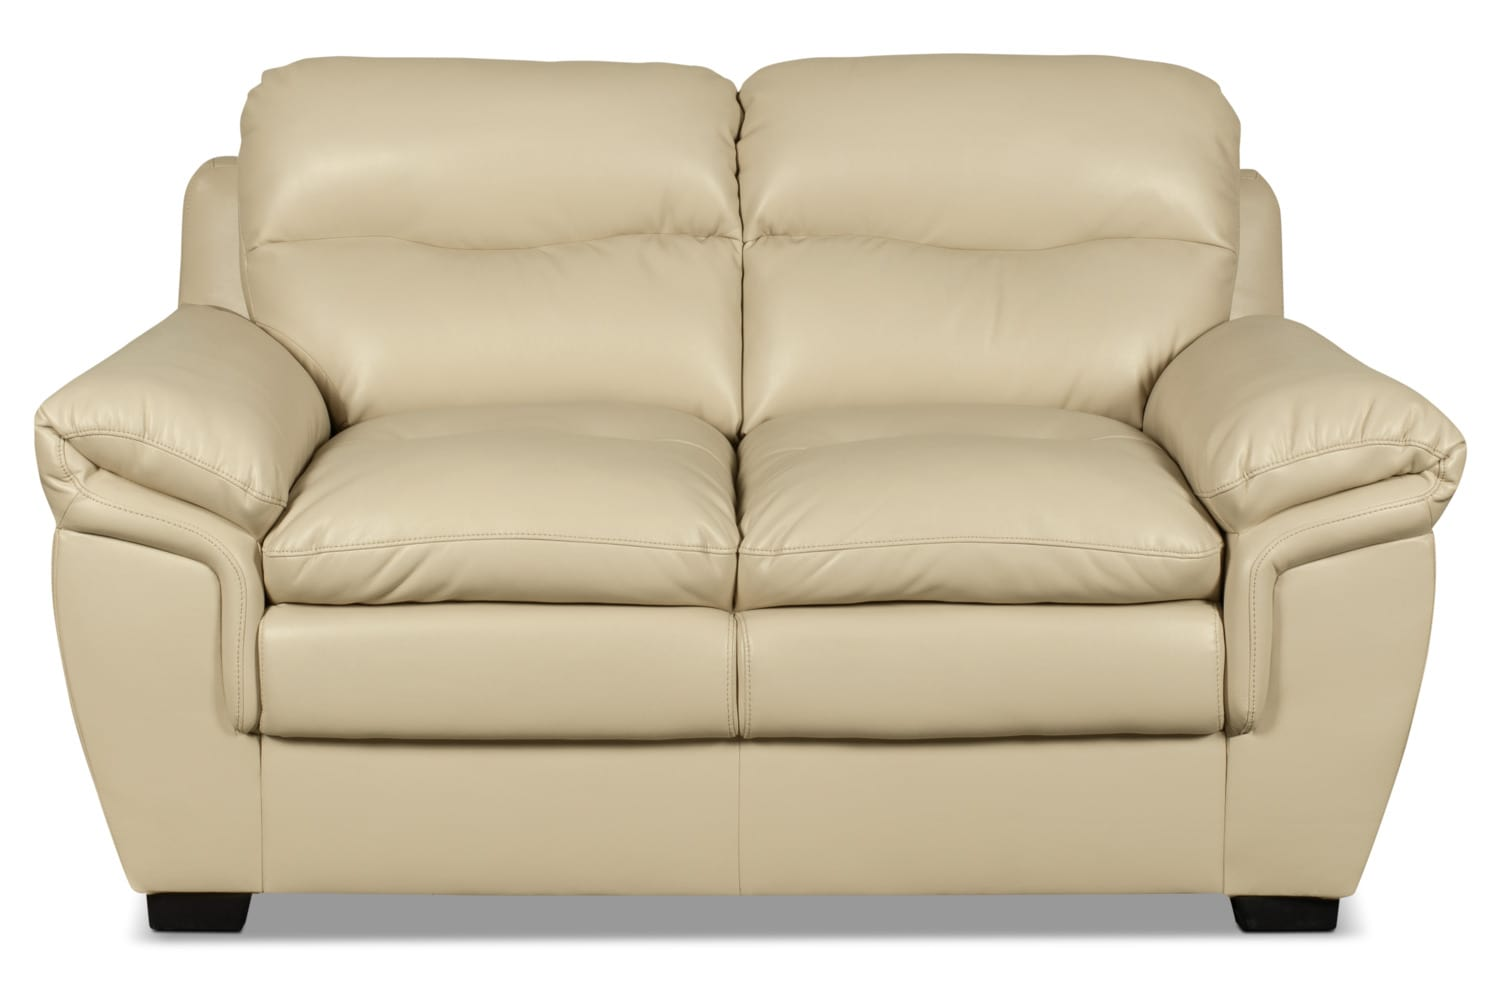 Bryon Leather-Look Fabric Loveseat – Cream